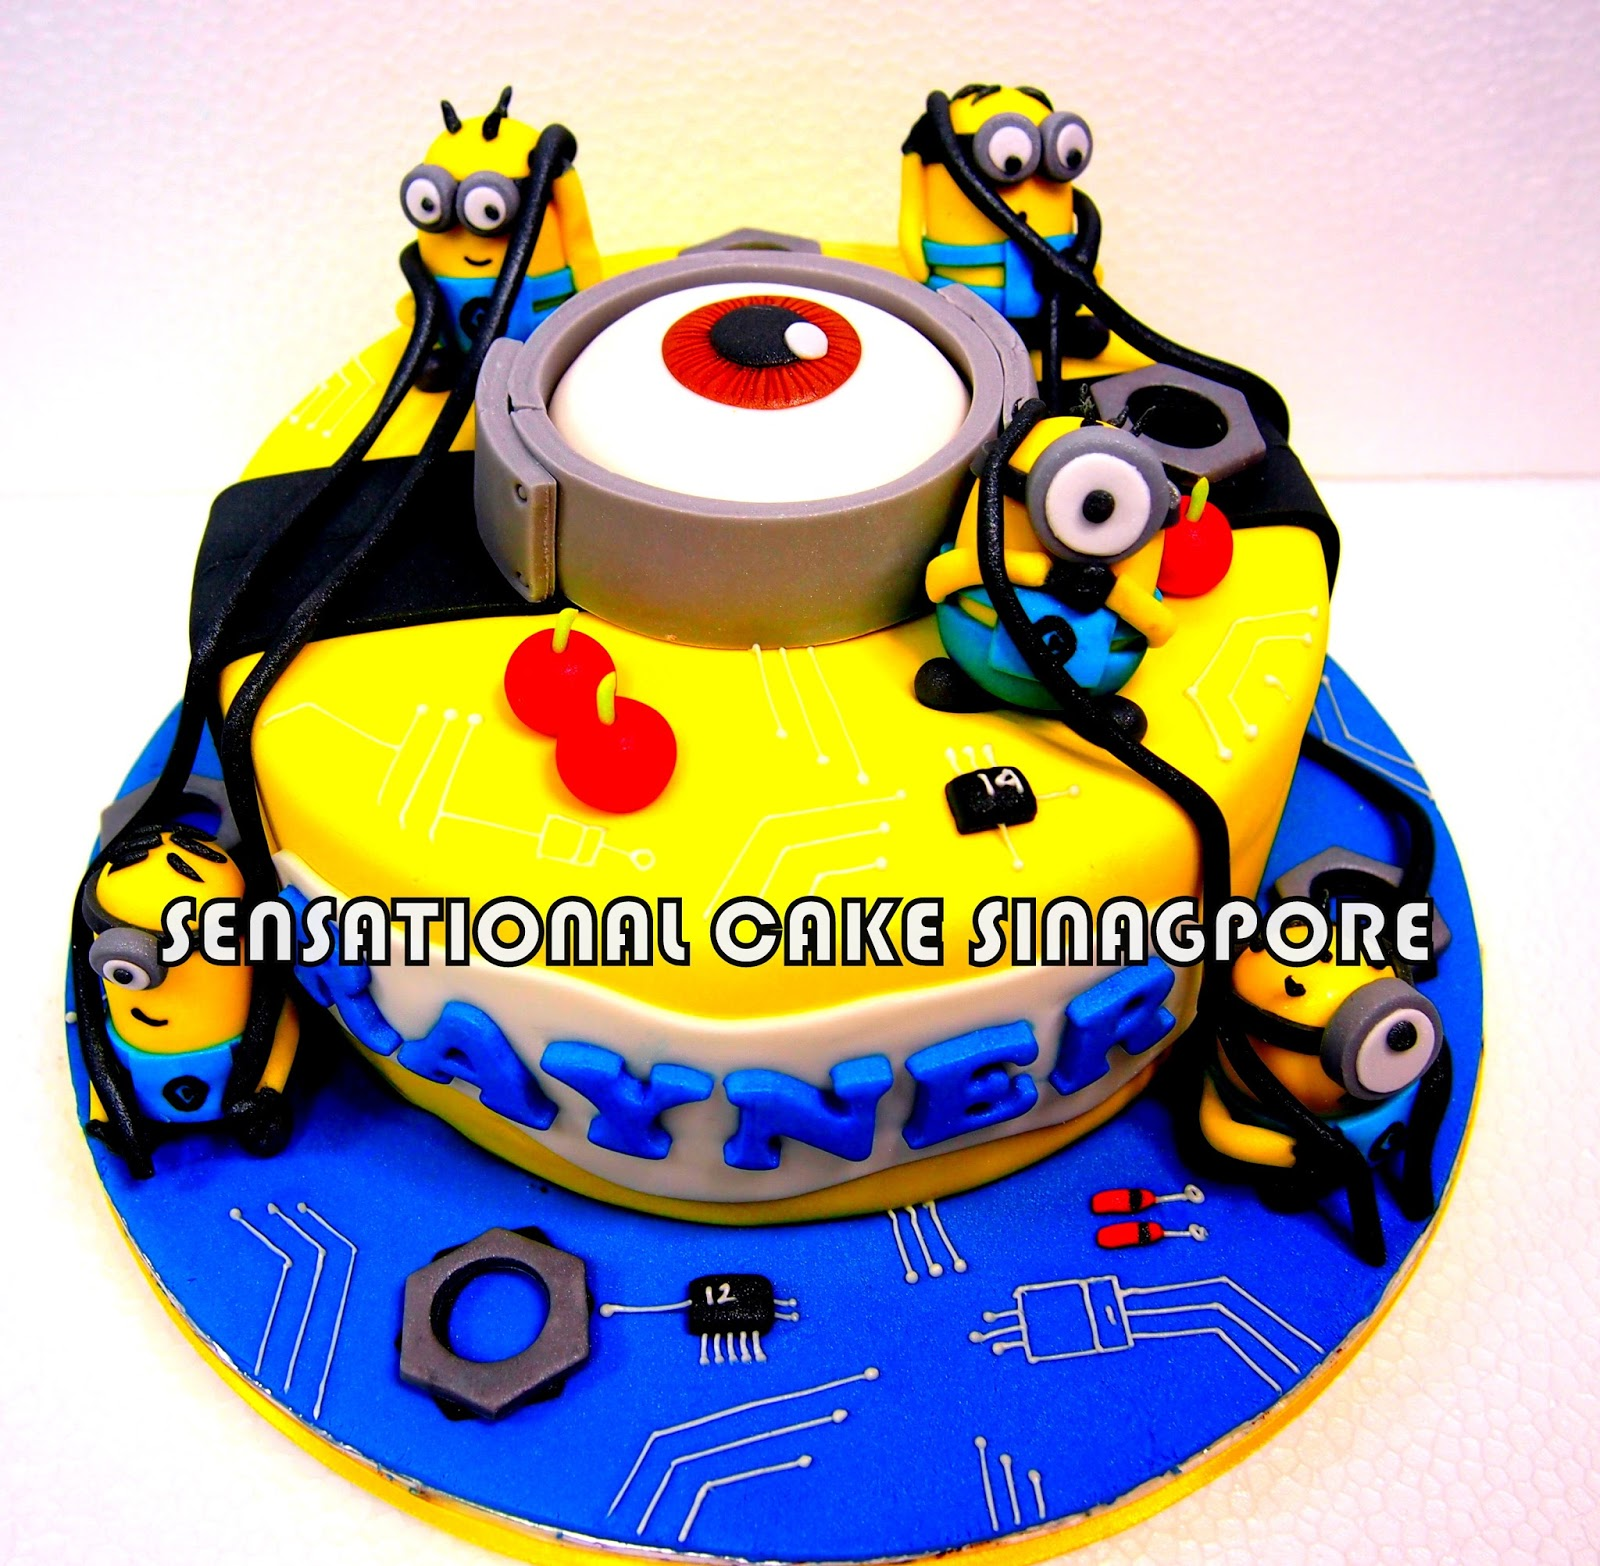 TECH SAVVY MINIONS CAKE SINGAPORE / DESPICABLE ME CAKE SINGAPORE